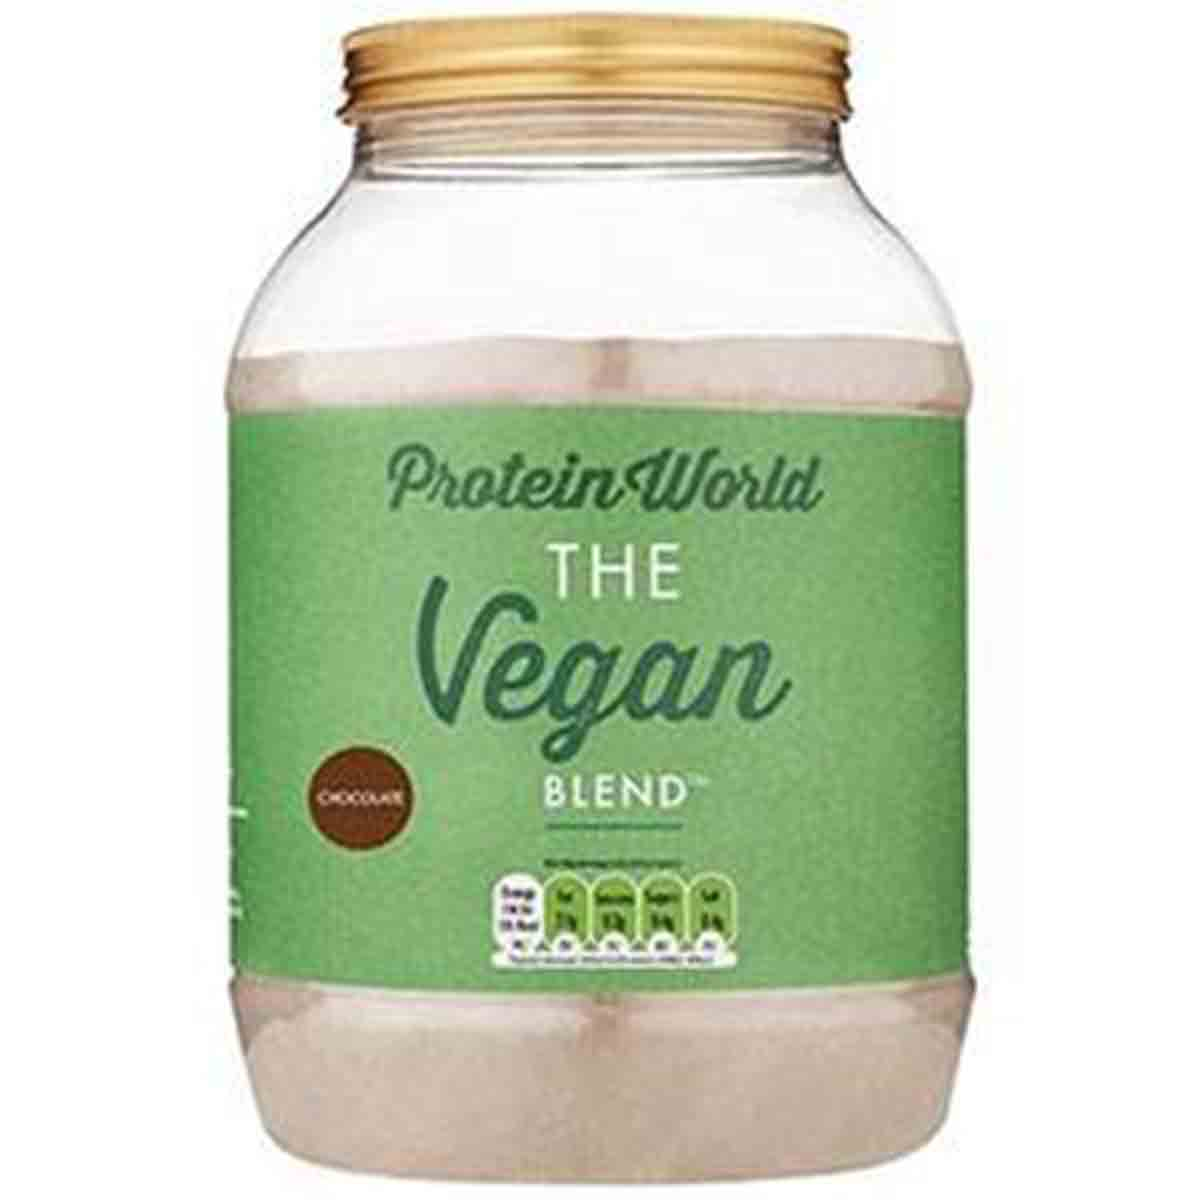 Protein World Vegan Blend